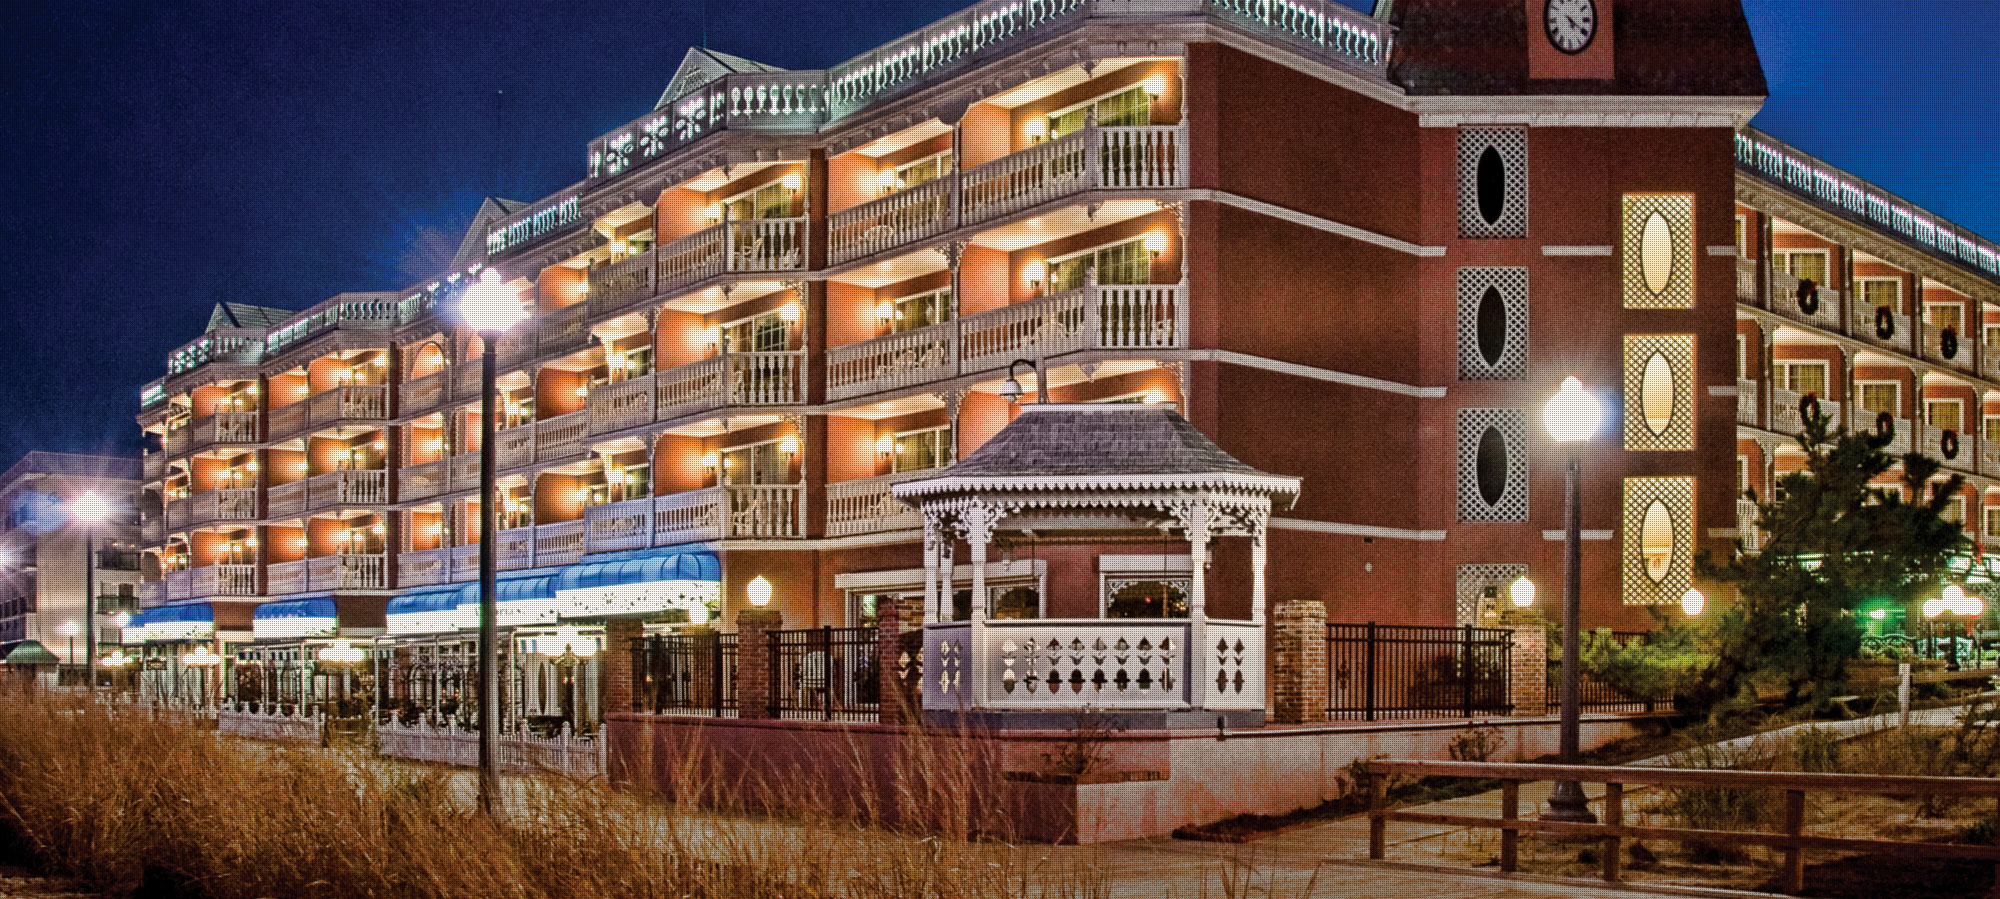 Boardwalk Plaza Hotel Nighttime Exterior Picture In Rehoboth Beach De